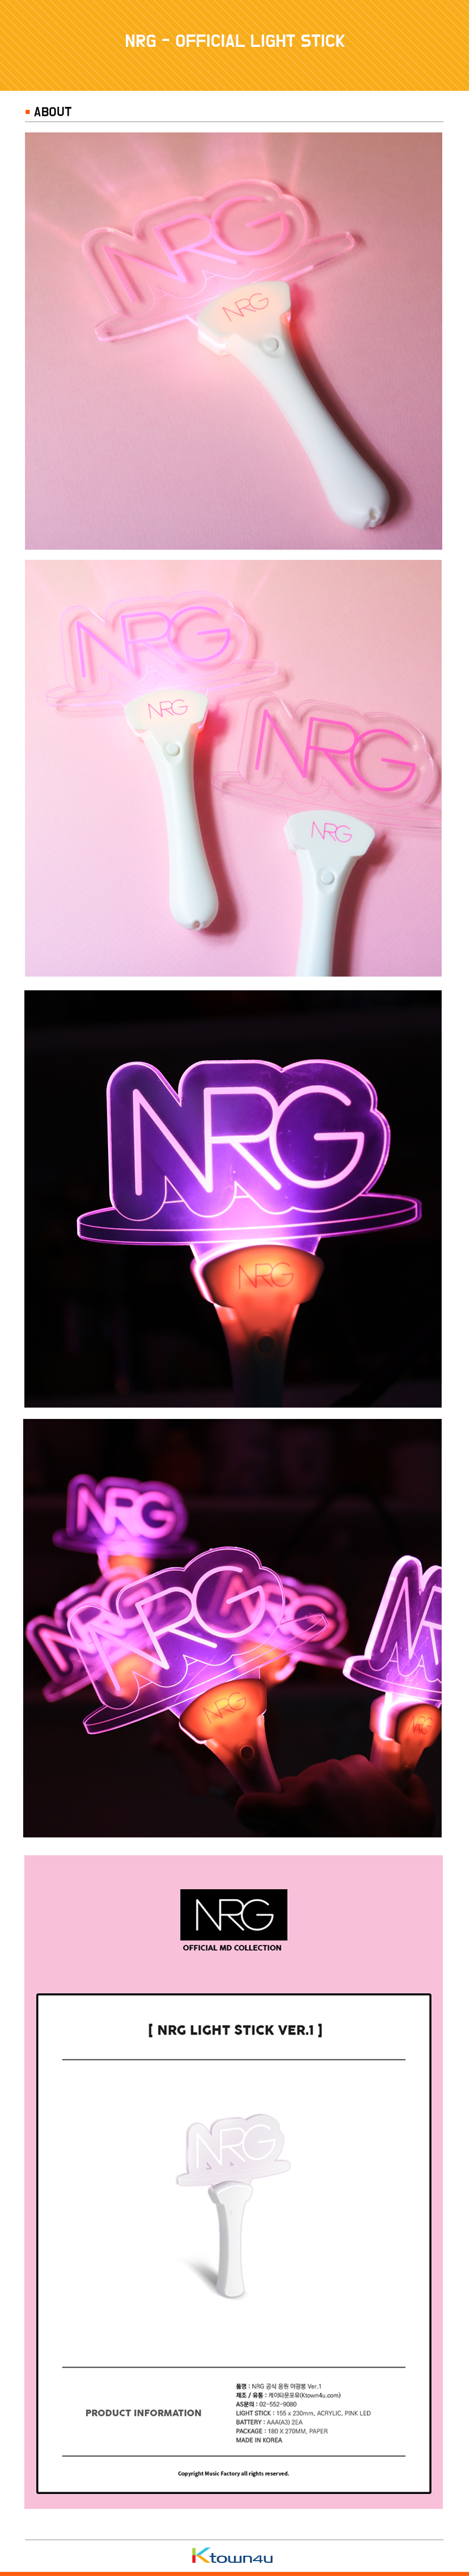 NRG - OFFICIAL LIGHT STICK